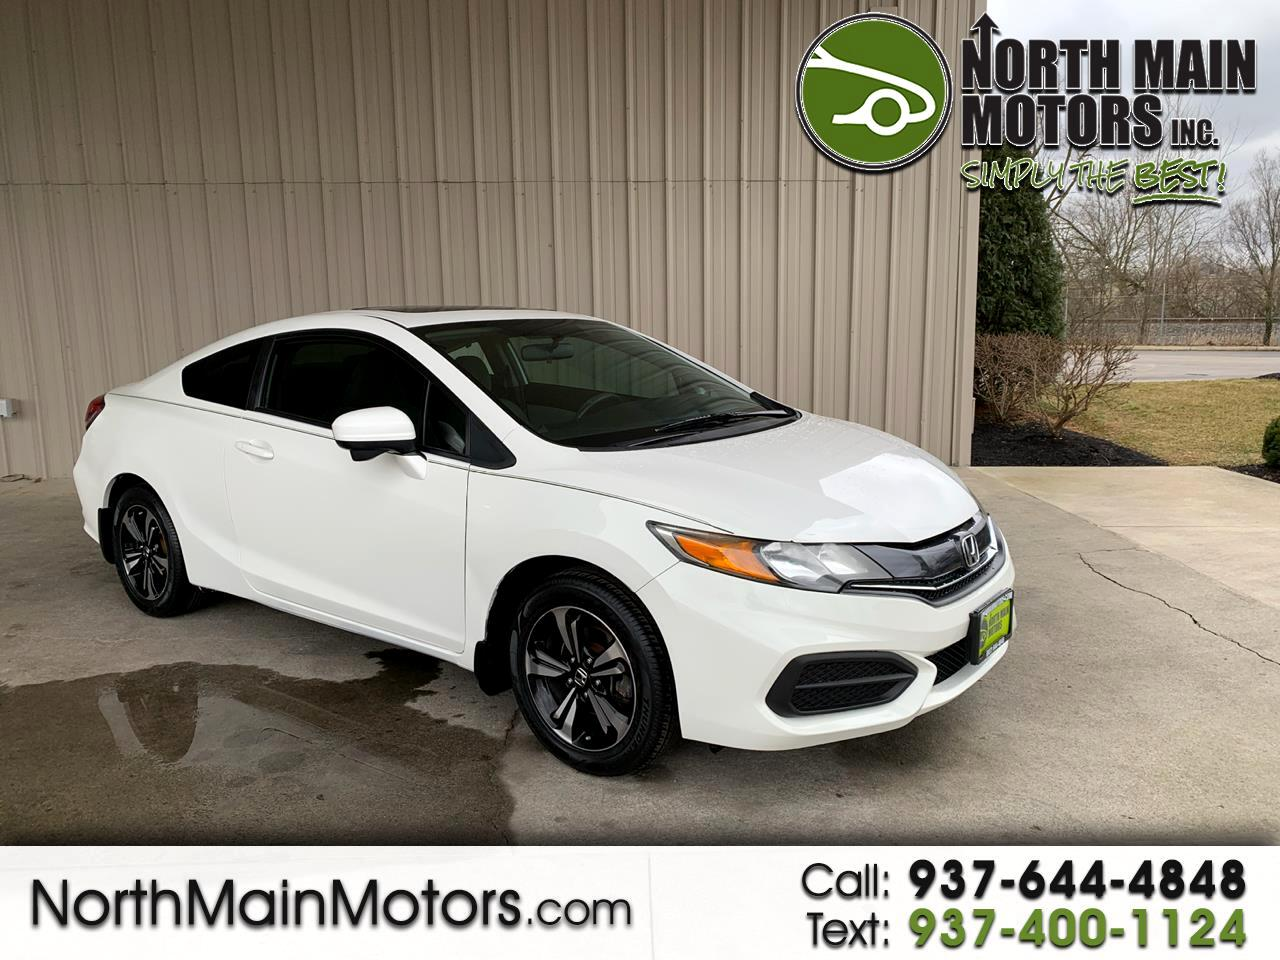 Honda Civic Coupe 2dr CVT EX 2015